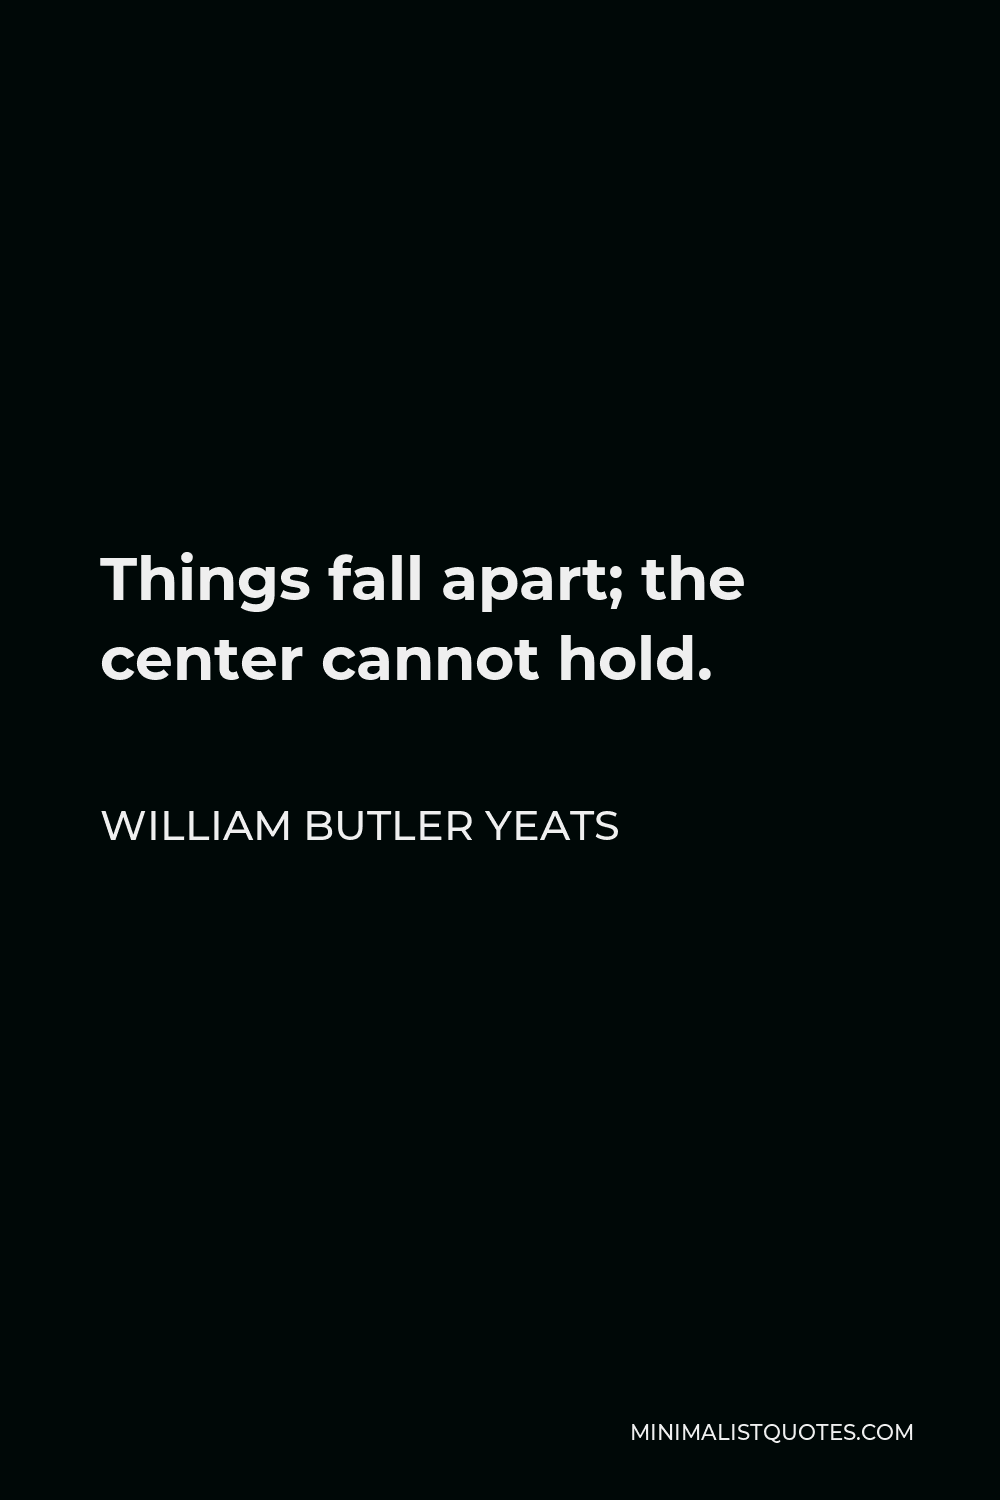 William Butler Yeats Quote - Things fall apart; the center cannot hold.